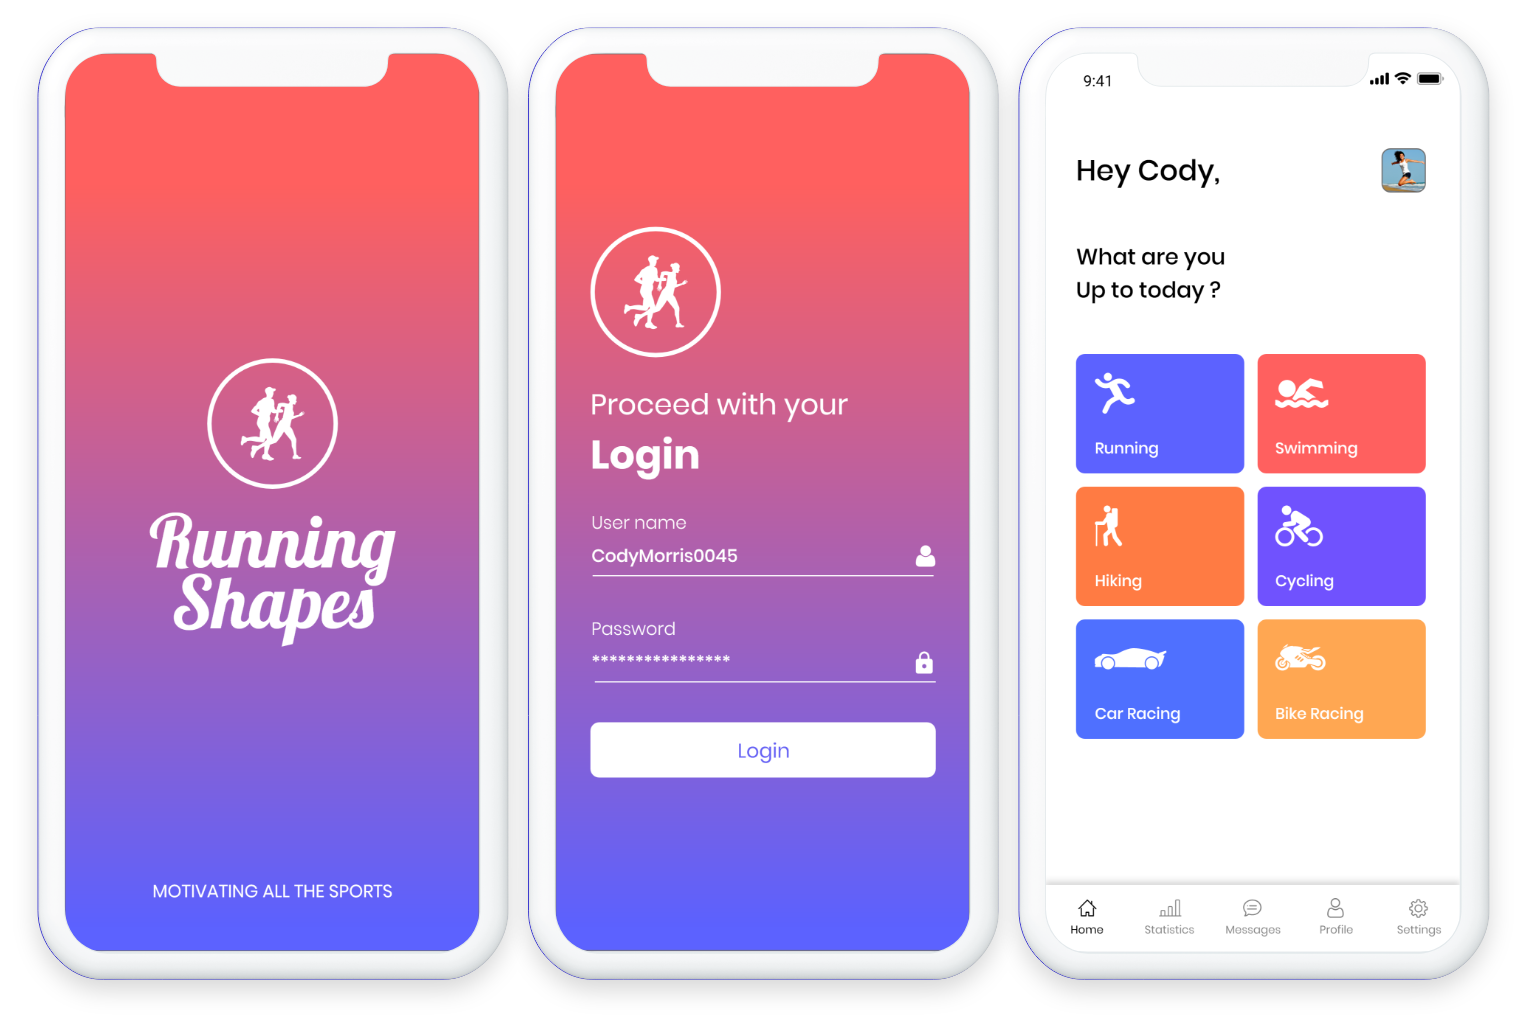 running-shapes-mobile-screens-mockup